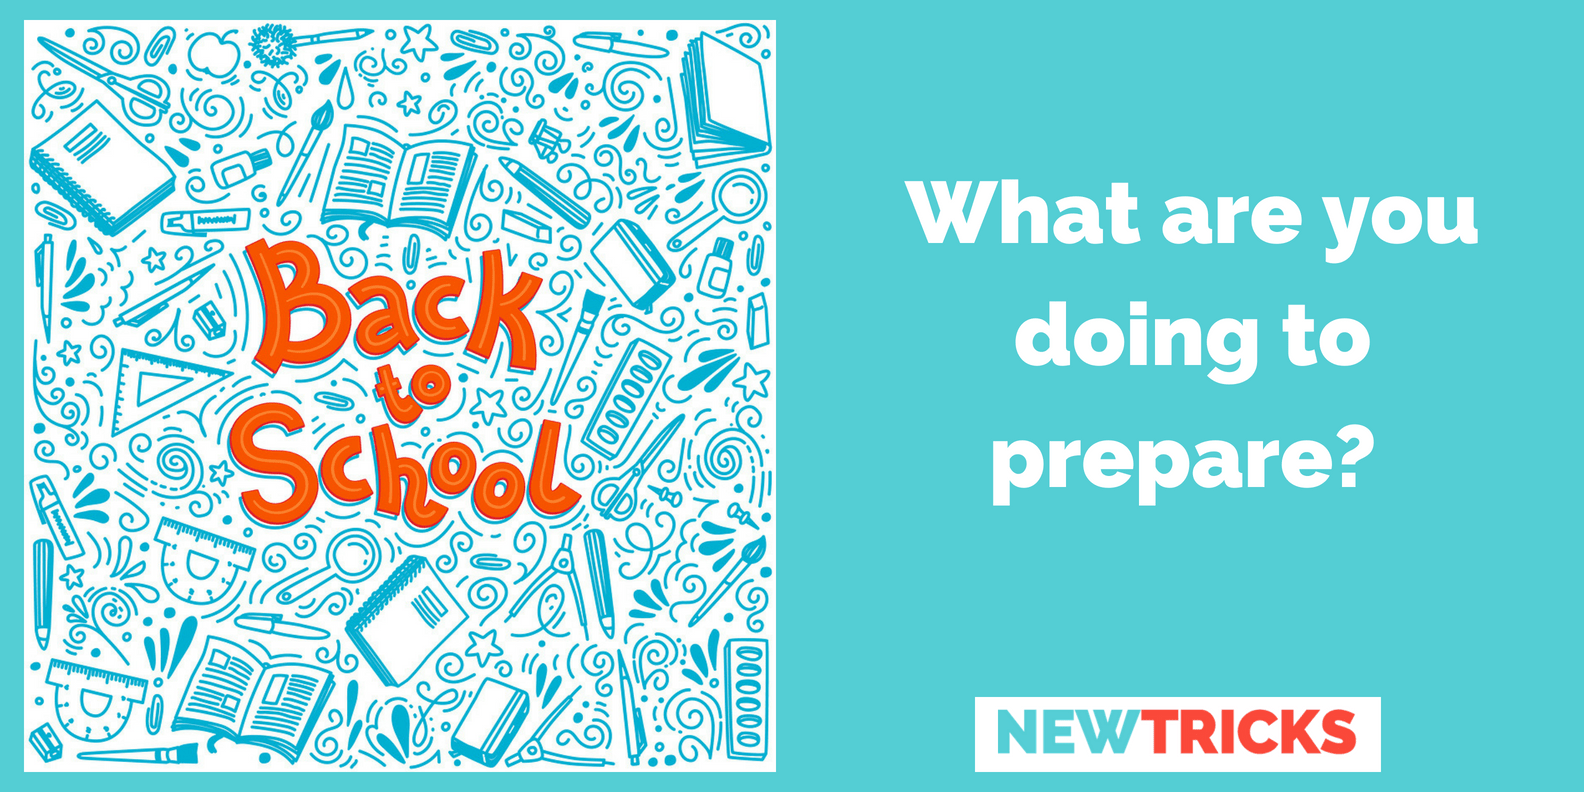 Back to School: What Are You Doing To Prepare